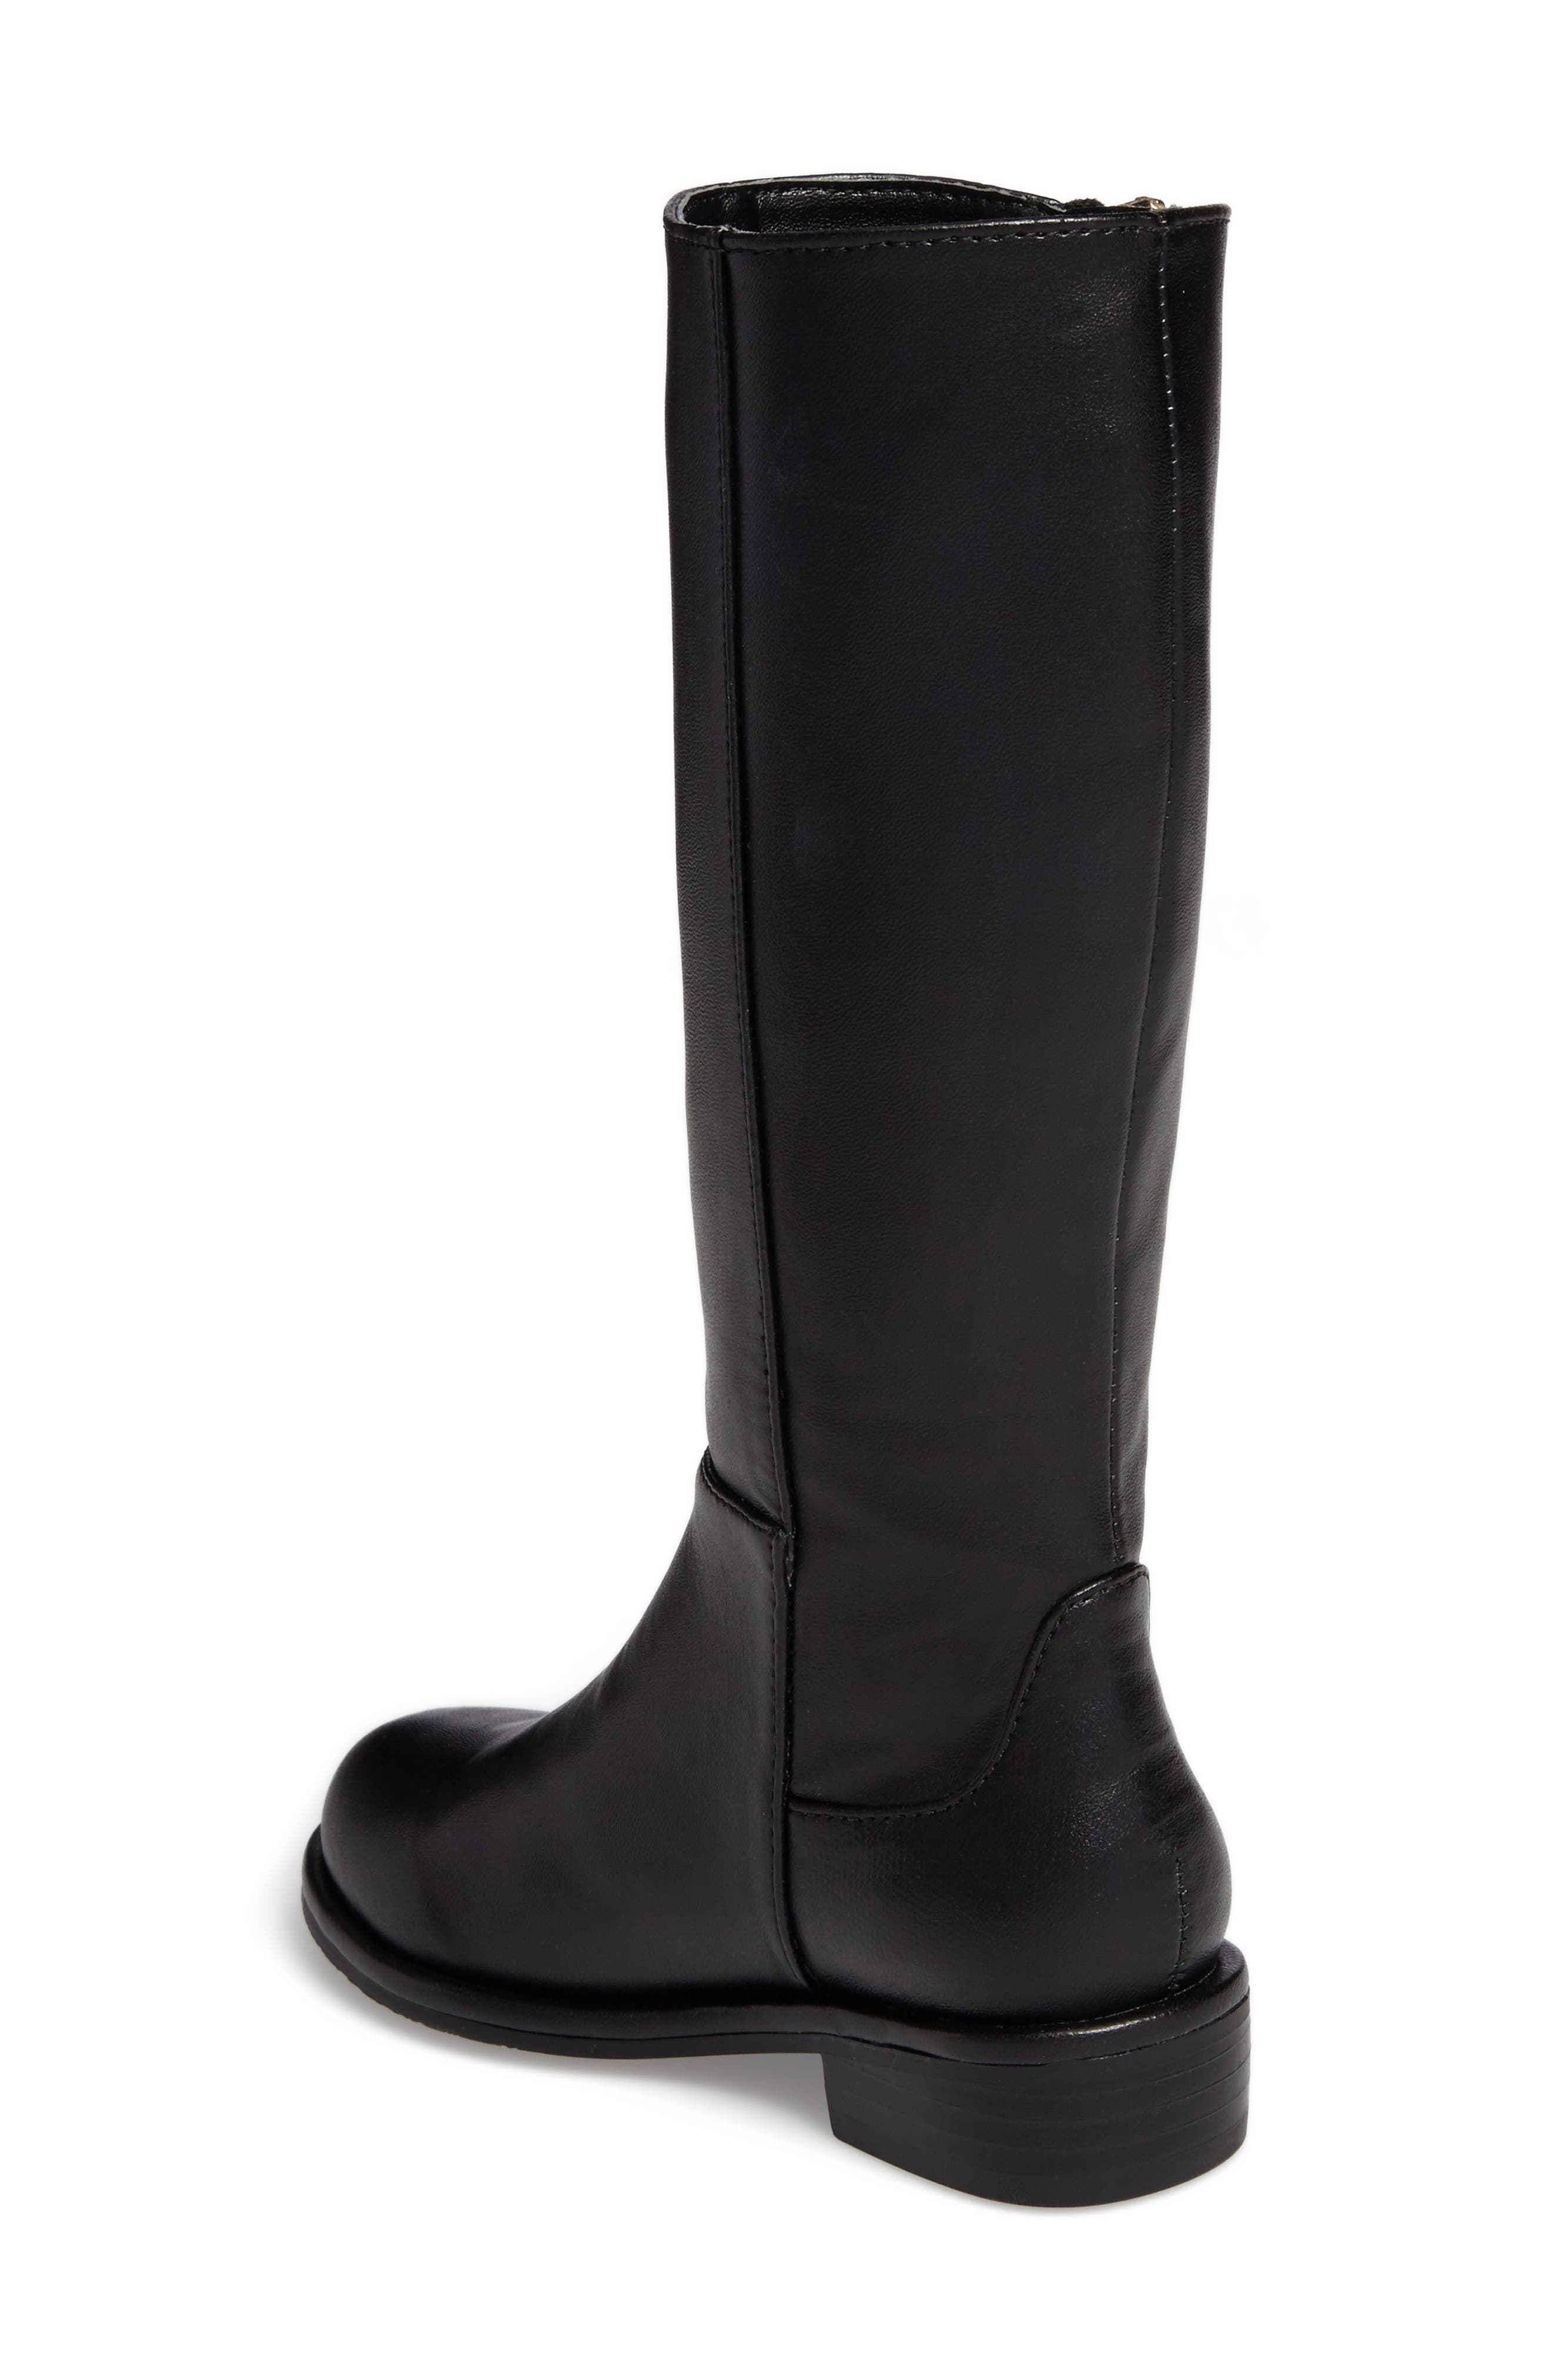 Lowland Riding Boot,                             Alternate thumbnail 2, color,                             001